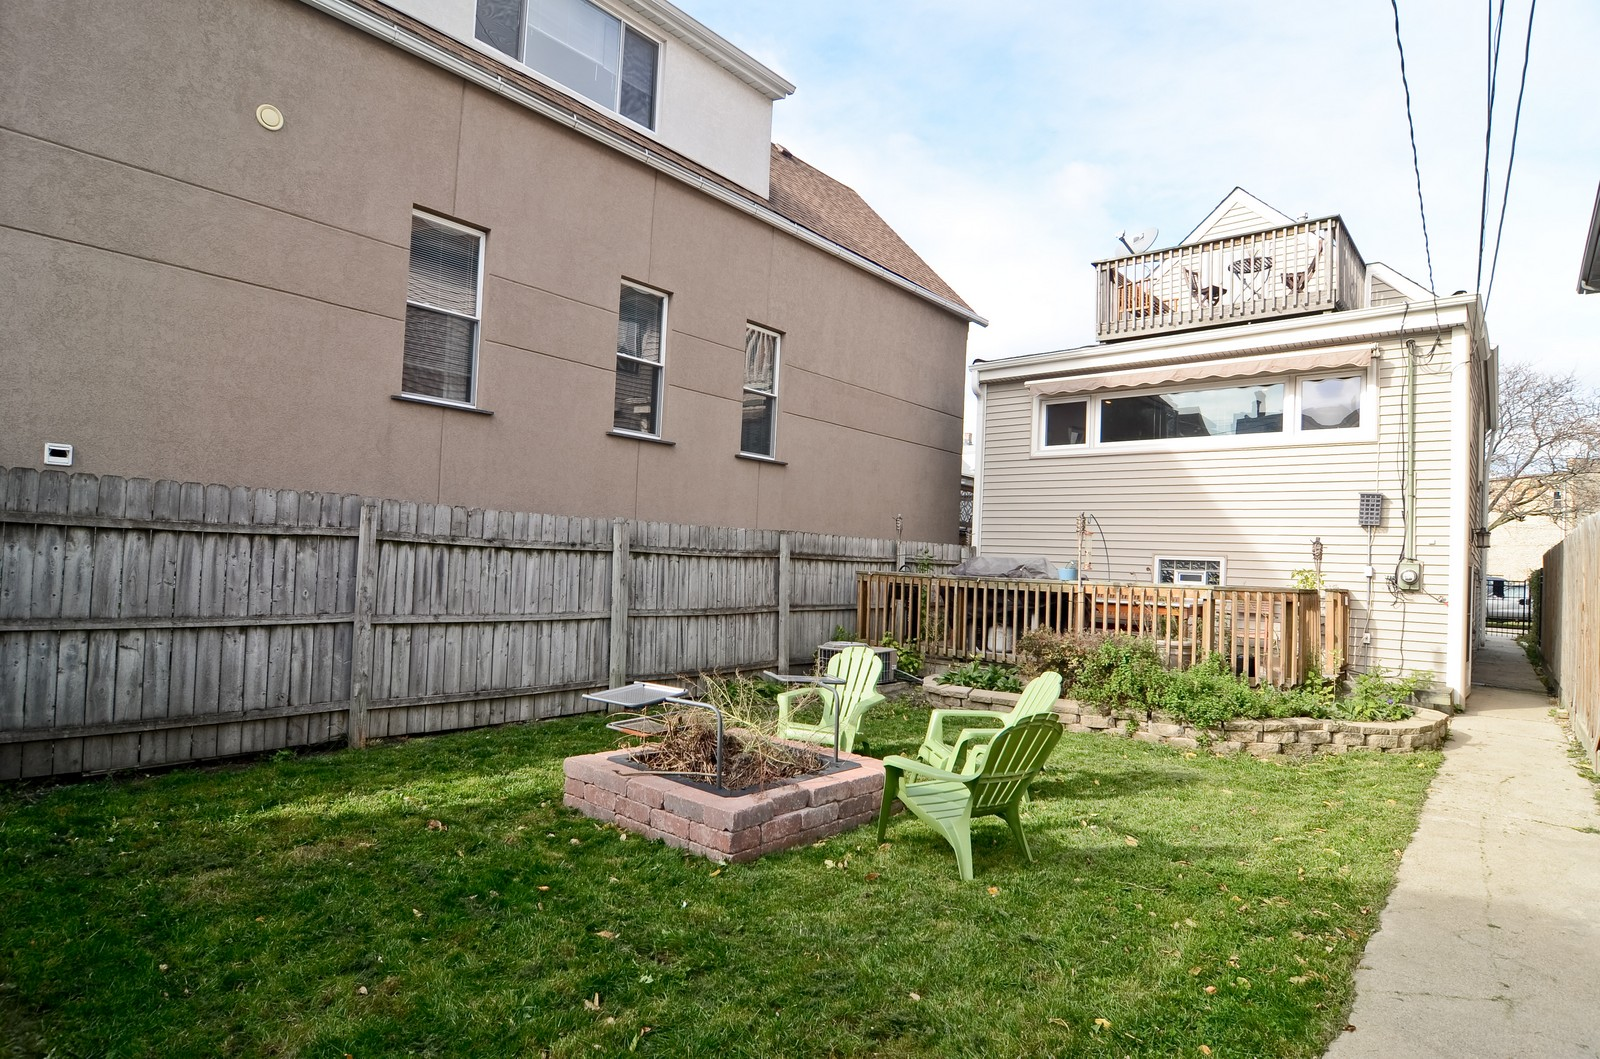 Real Estate Photography - 3525 W Wollfram, Chicago, IL, 60618 - Rear View